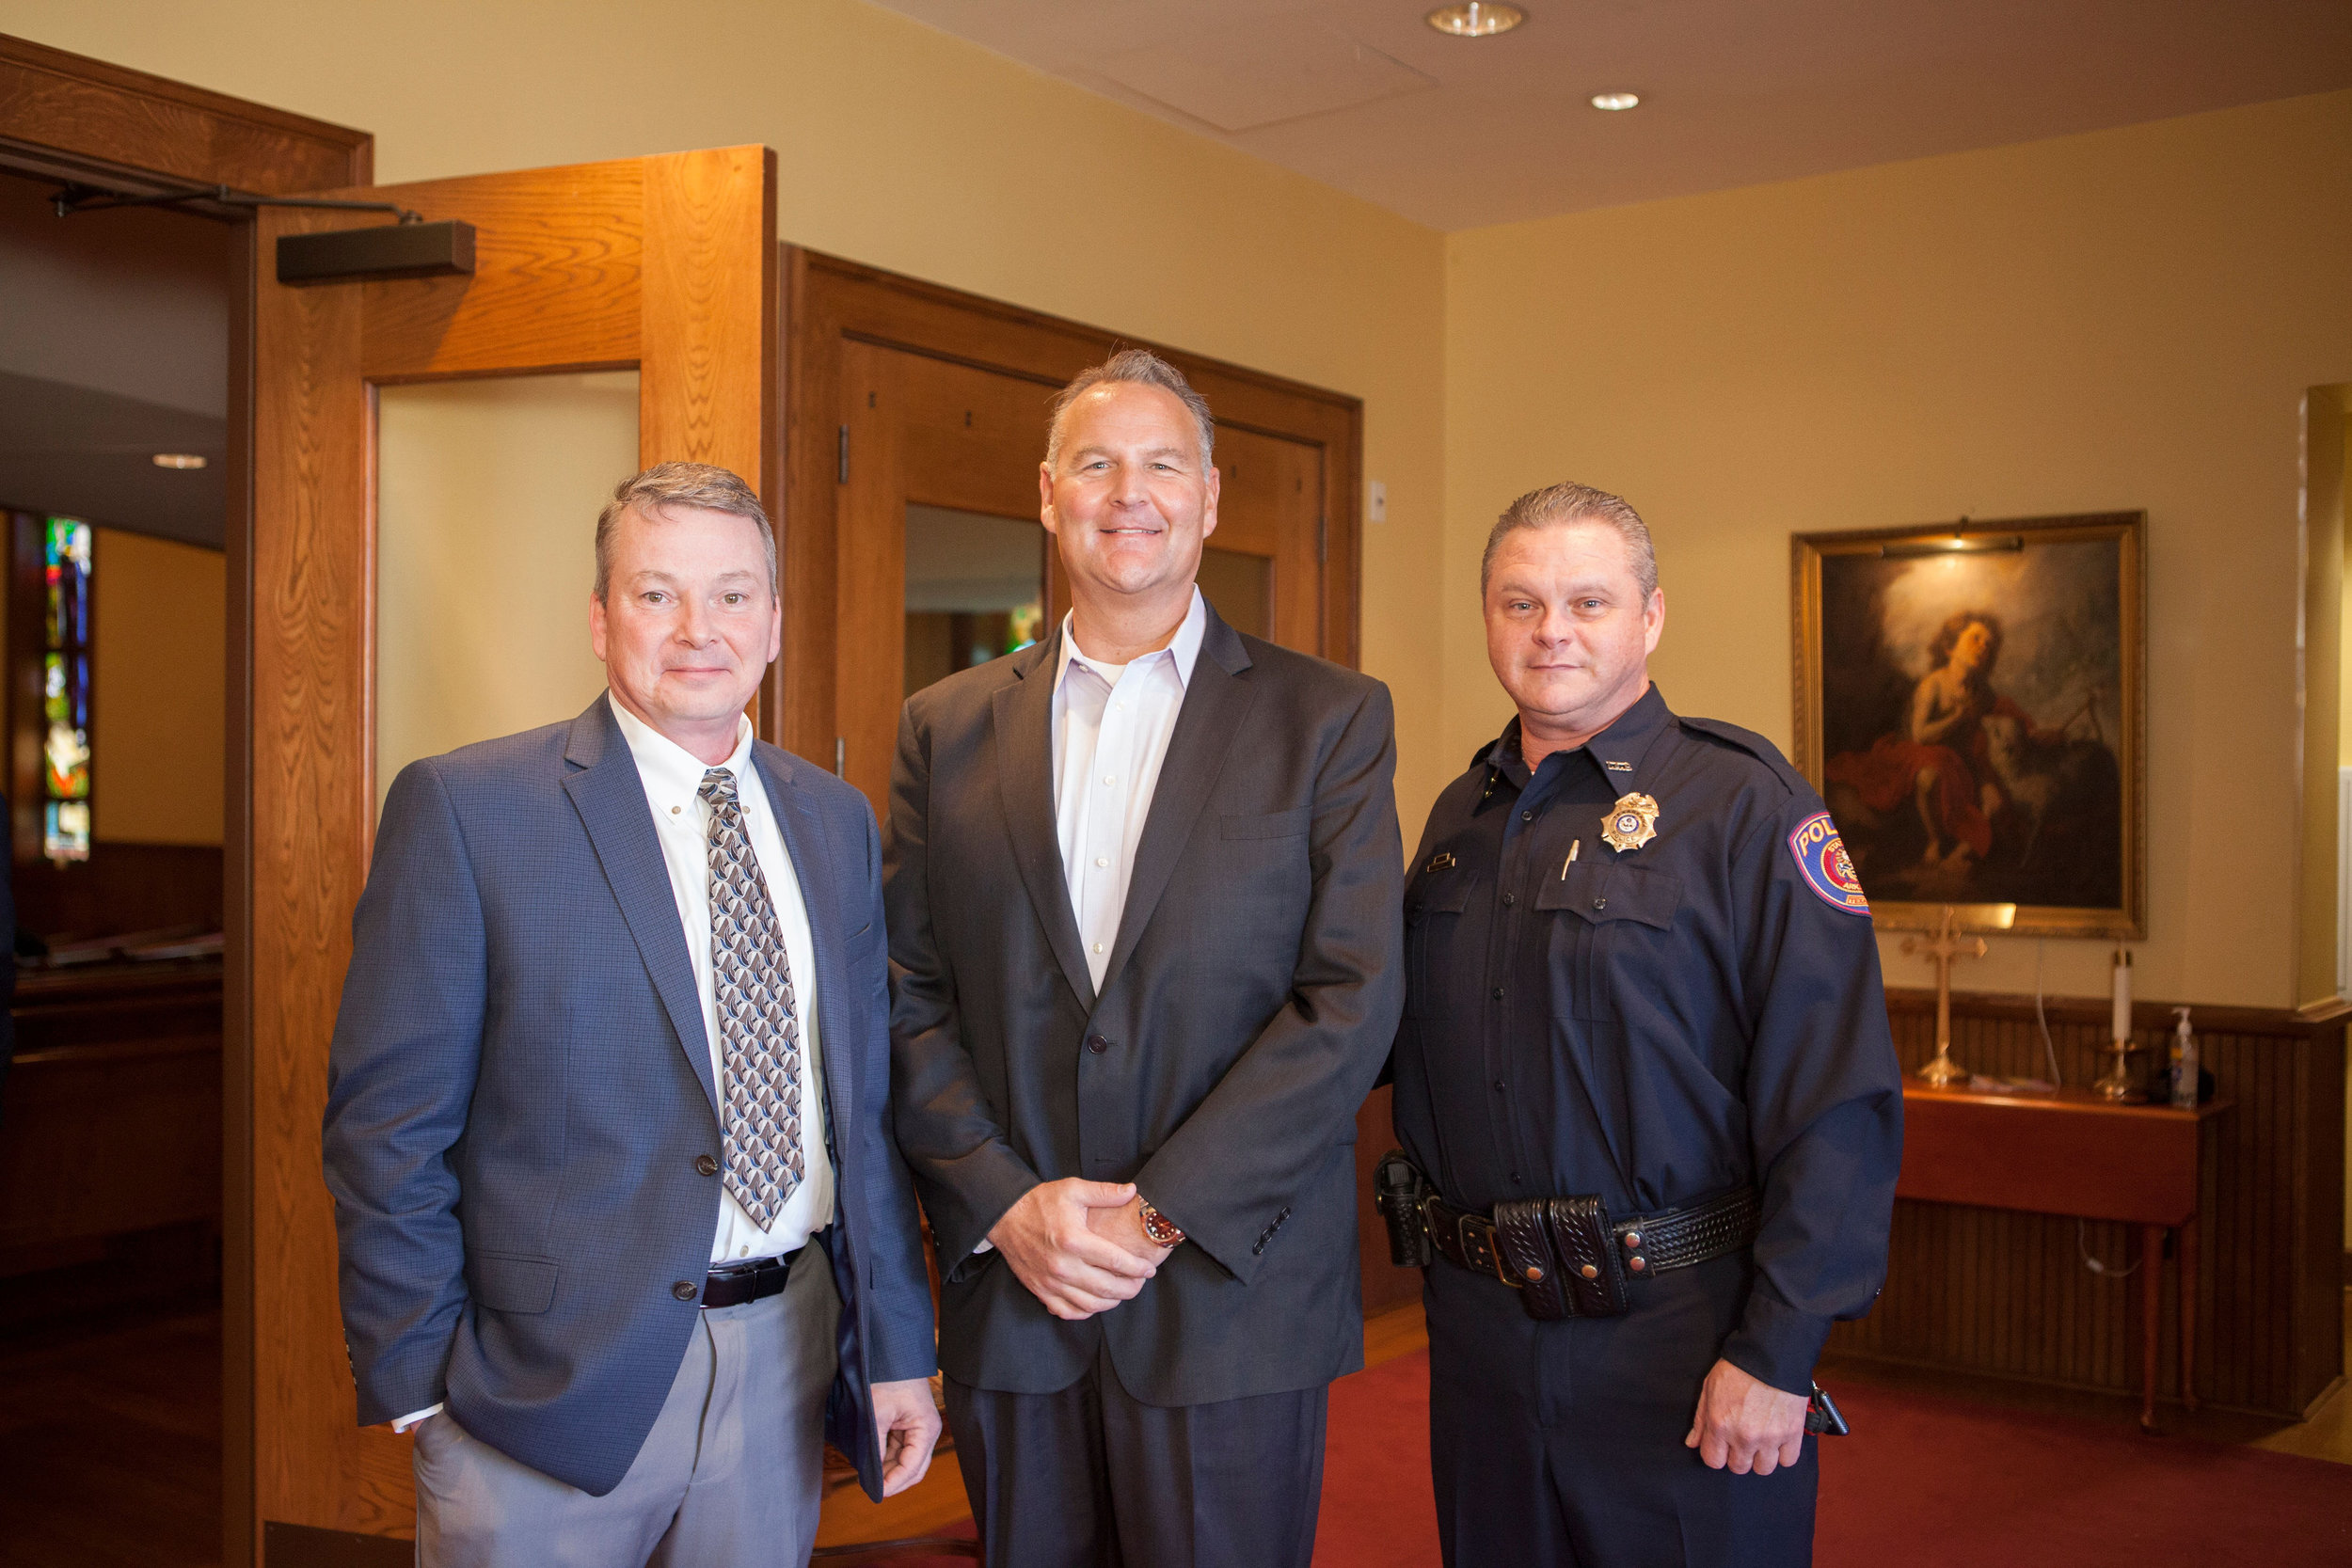 Joe Bennett, Dr. Matt Young and Lt. Scott Megason